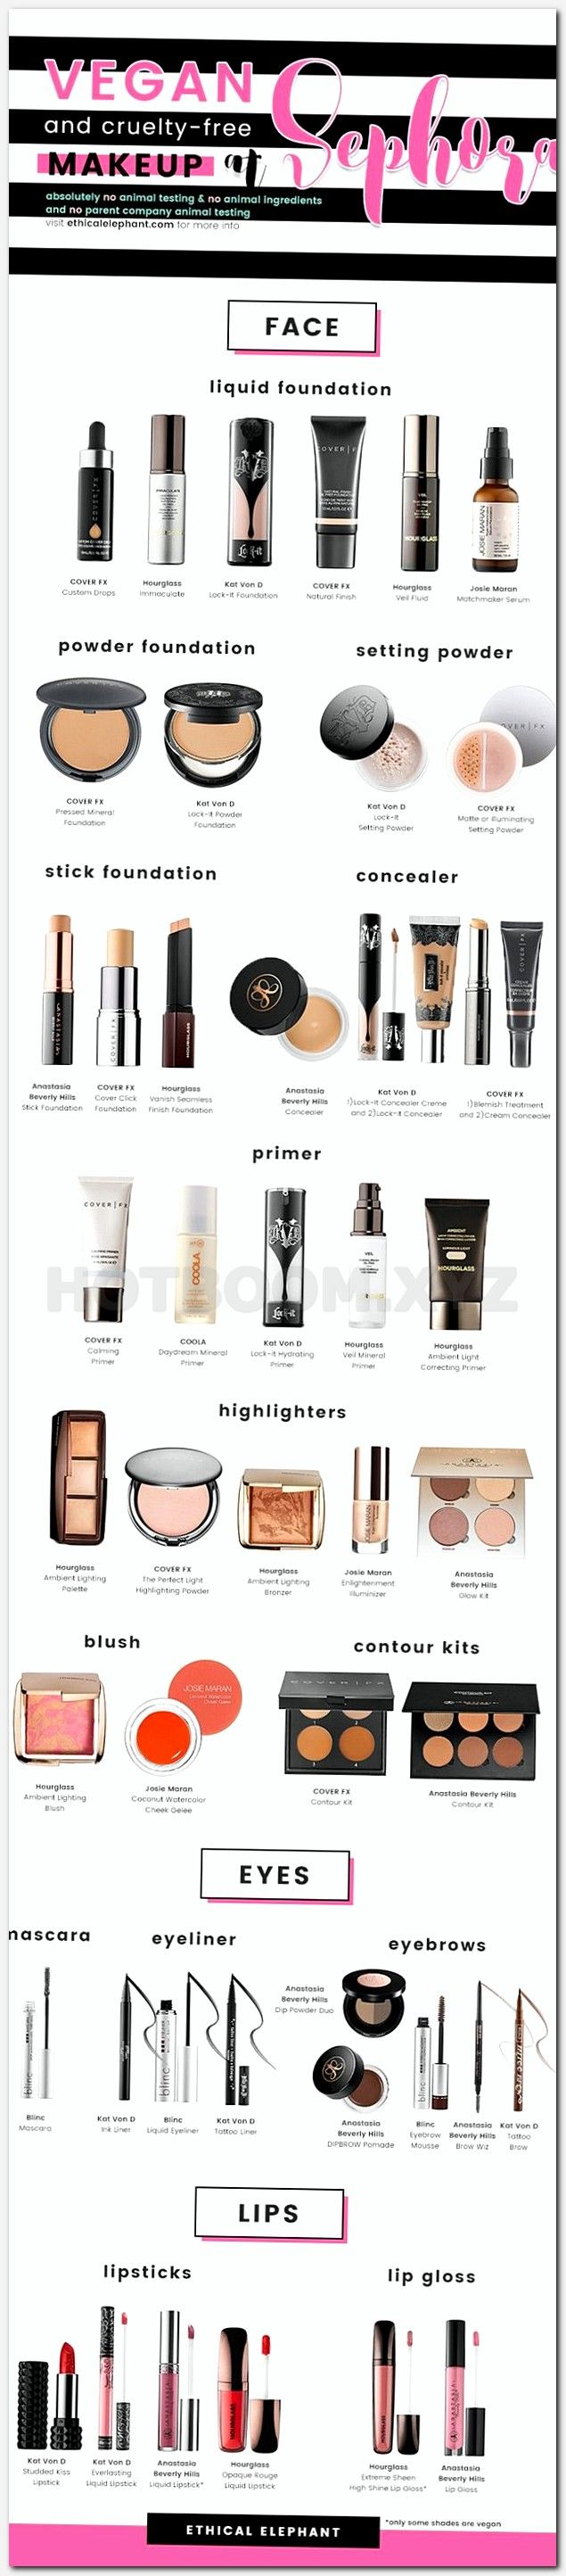 how to make up our self, how to do fancy makeup, bengali beauty tips, make up at the gym, makeup for photoshoot outdoors, graduation makeup ideas, full makeup application mac, sallys beauty supply locations, ee cosmetics, makeup products 2017, make up summer 2017, yuz makyaj indir, pharmacy cosmetics brands, how to do makeup simple, indian makeup for wedding, best wedding makeup